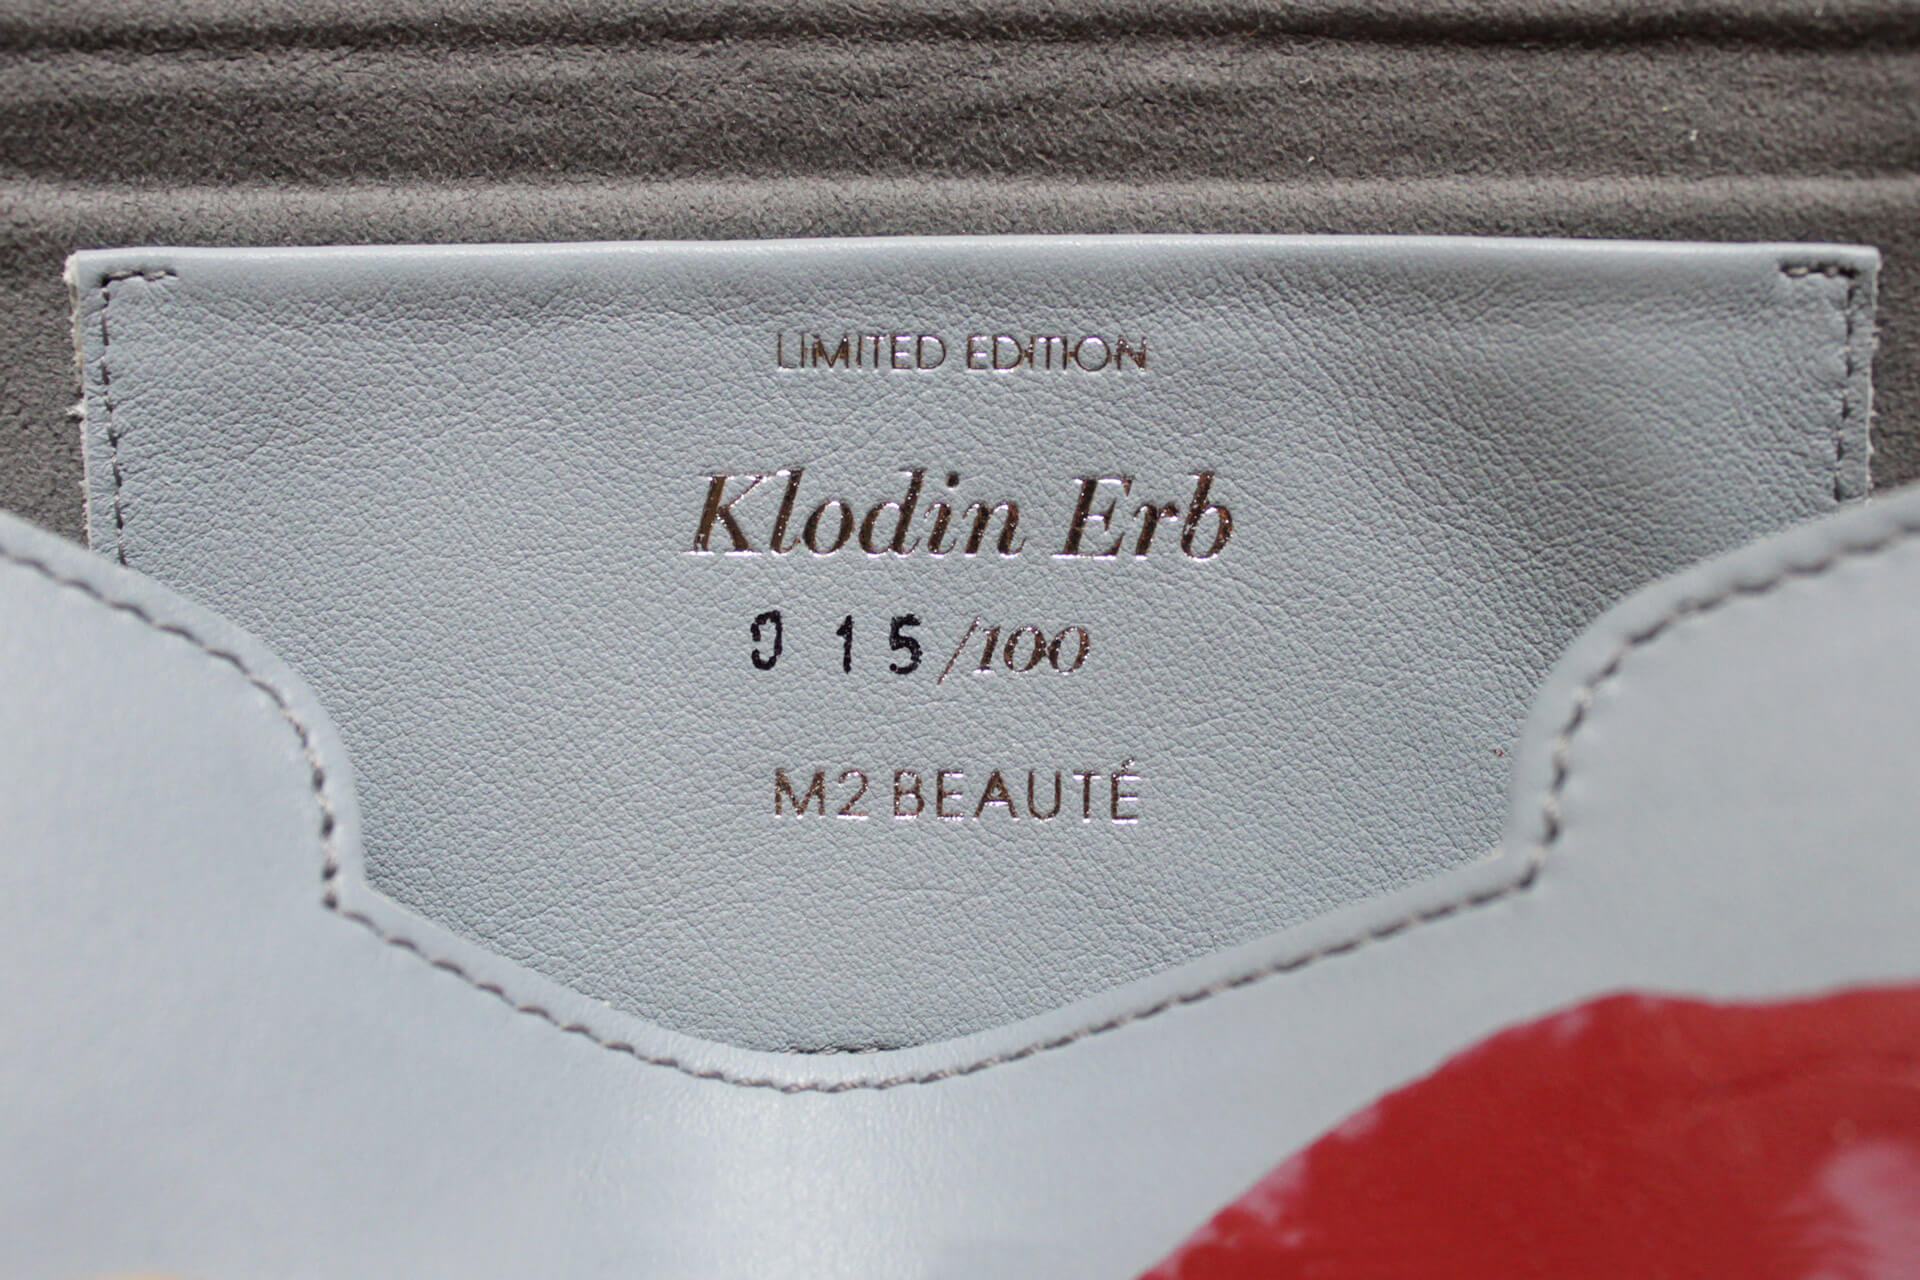 m2-beaute-klodin-erb-bag-numbered